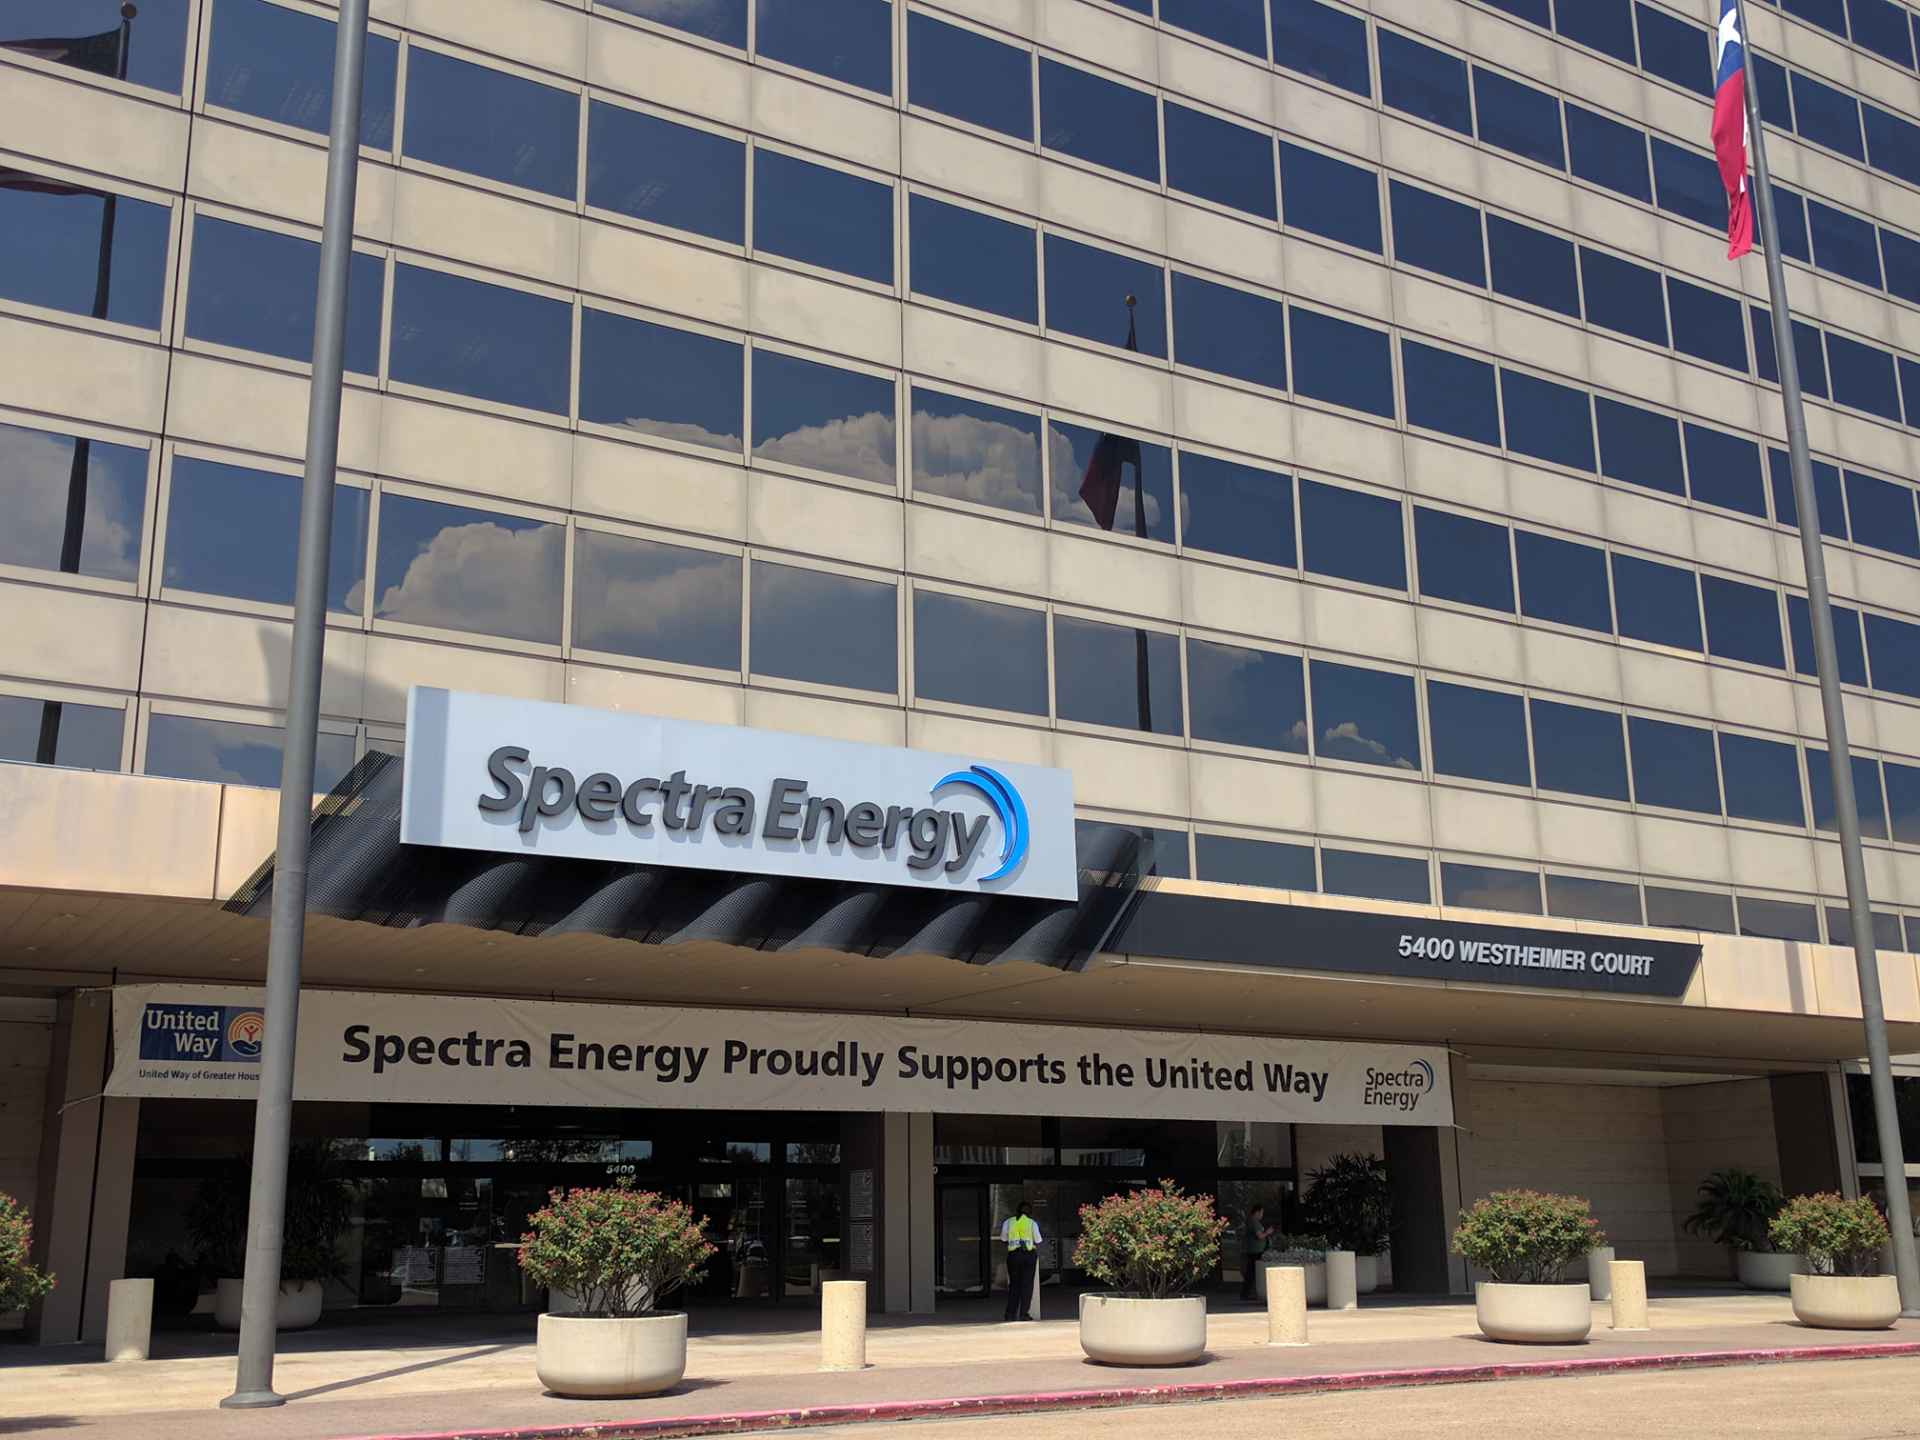 Entrance to Spectra Energy's corporate headquarters in Houston, Texas.